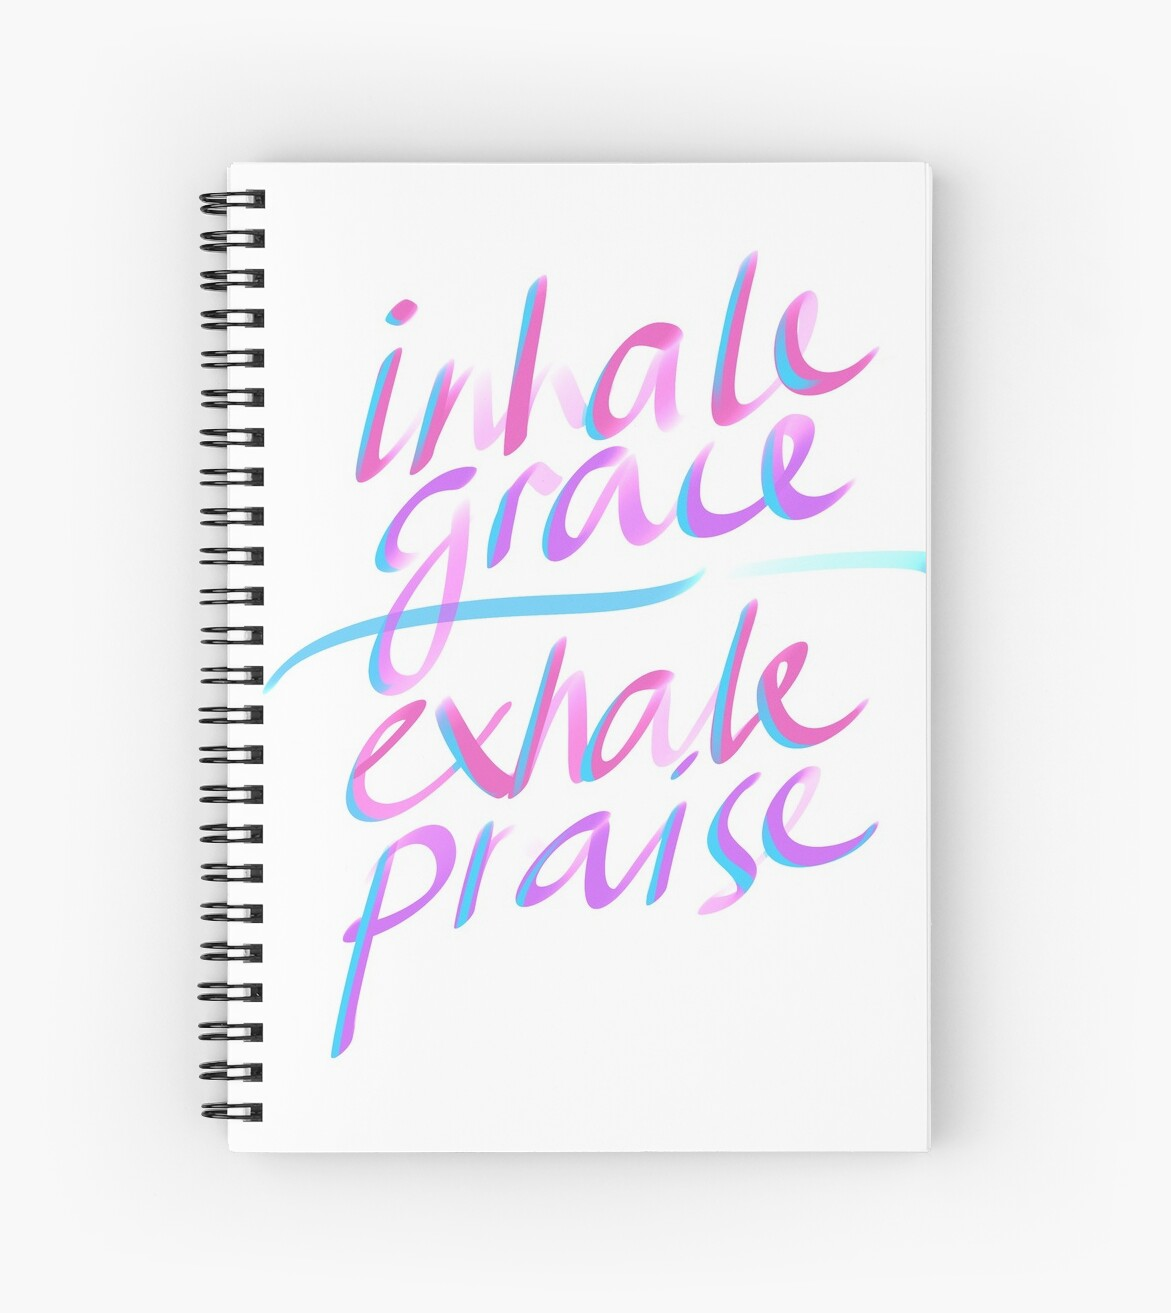 Inhale Grace Exhale Praise Christian Gift by TCC Publishing  by TCCPublishing